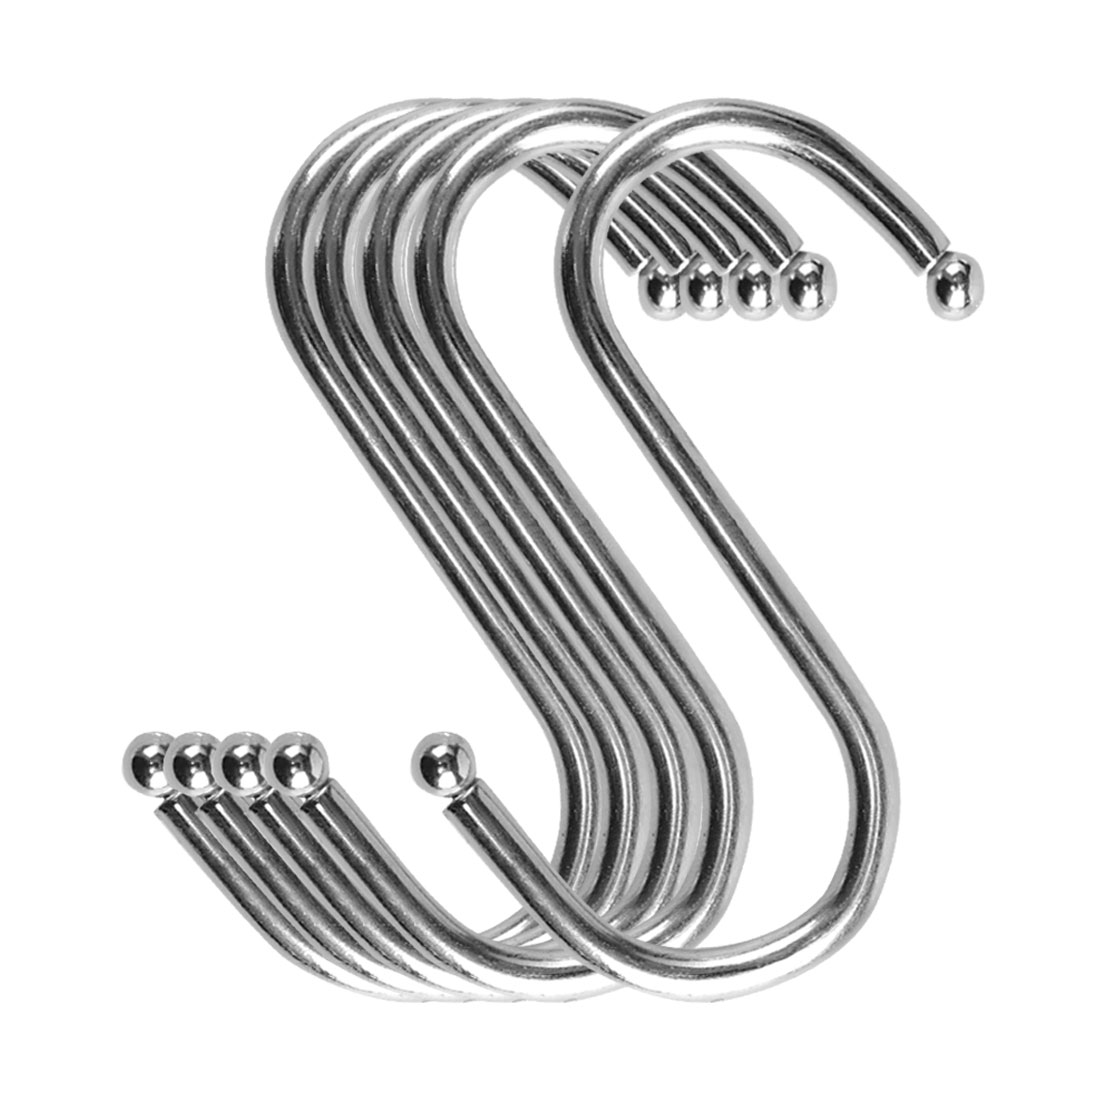 S Shape Hook Rack Stainless Steel for Kitchenware Clothes Towels Holder 5 Pack